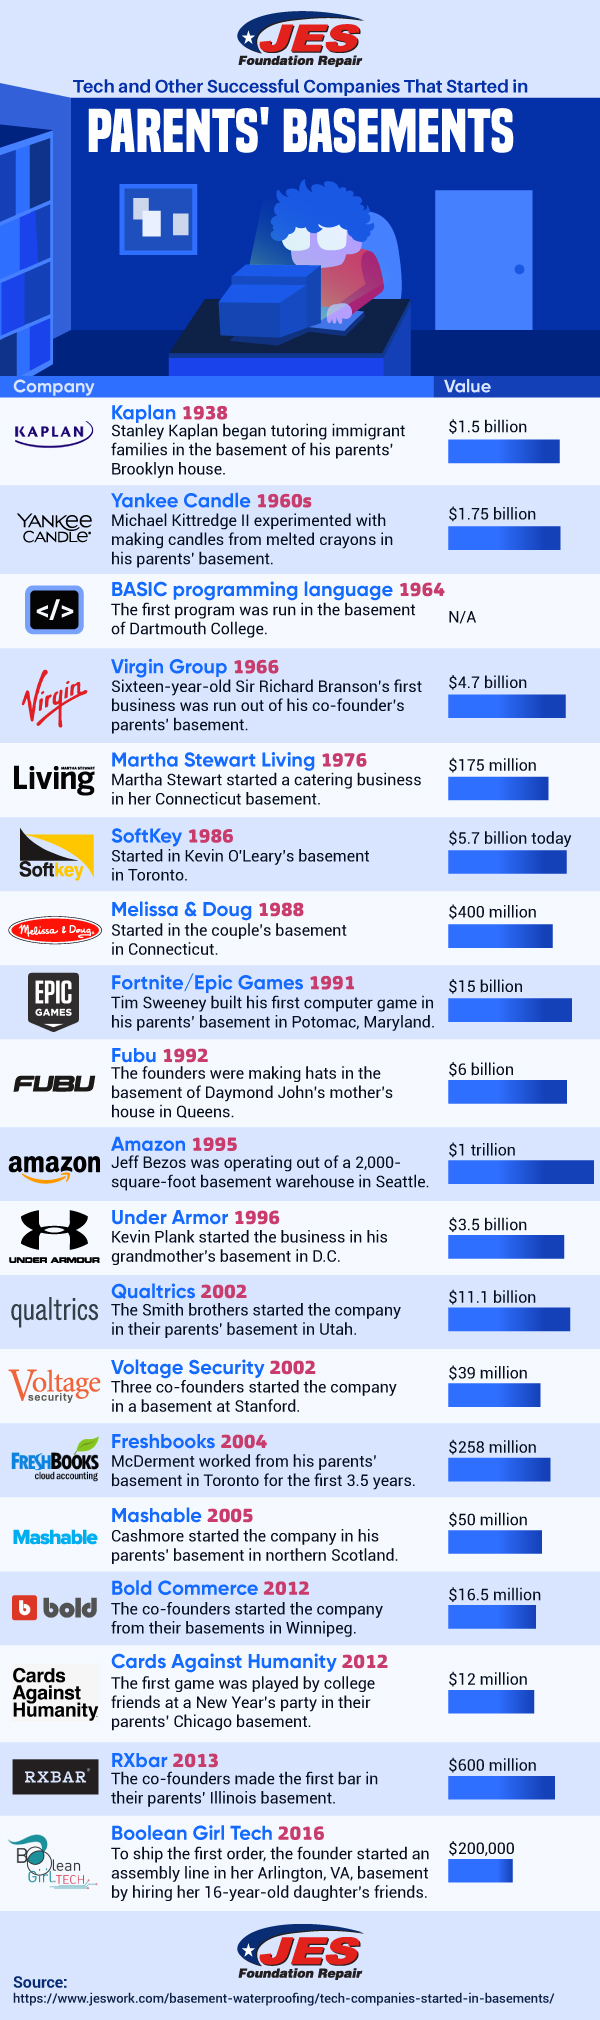 Tech and Other Successful Companies That Started in Parents' Basements